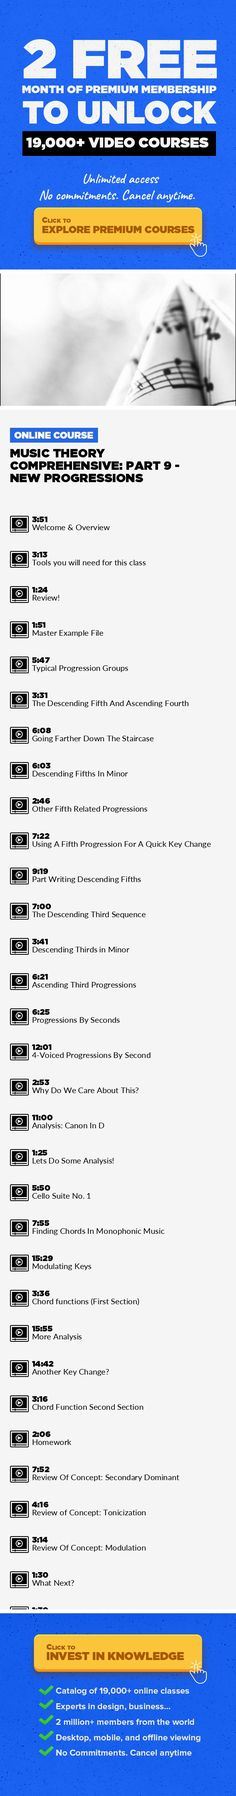 Music Theory Comprehensive: Part 9 - New Progressions Music Composition, Music Education, Music Production, Music Technology, Music Theory, Creative, Ableton Live, Songwriting, Audio #onlinecourses #onlineprogramscomputers #onlineclassesnotes   For years I've been teaching Music Theory in the college classroom. These classes I'm making for Udemy use the same syllabus I've used in my college classe...